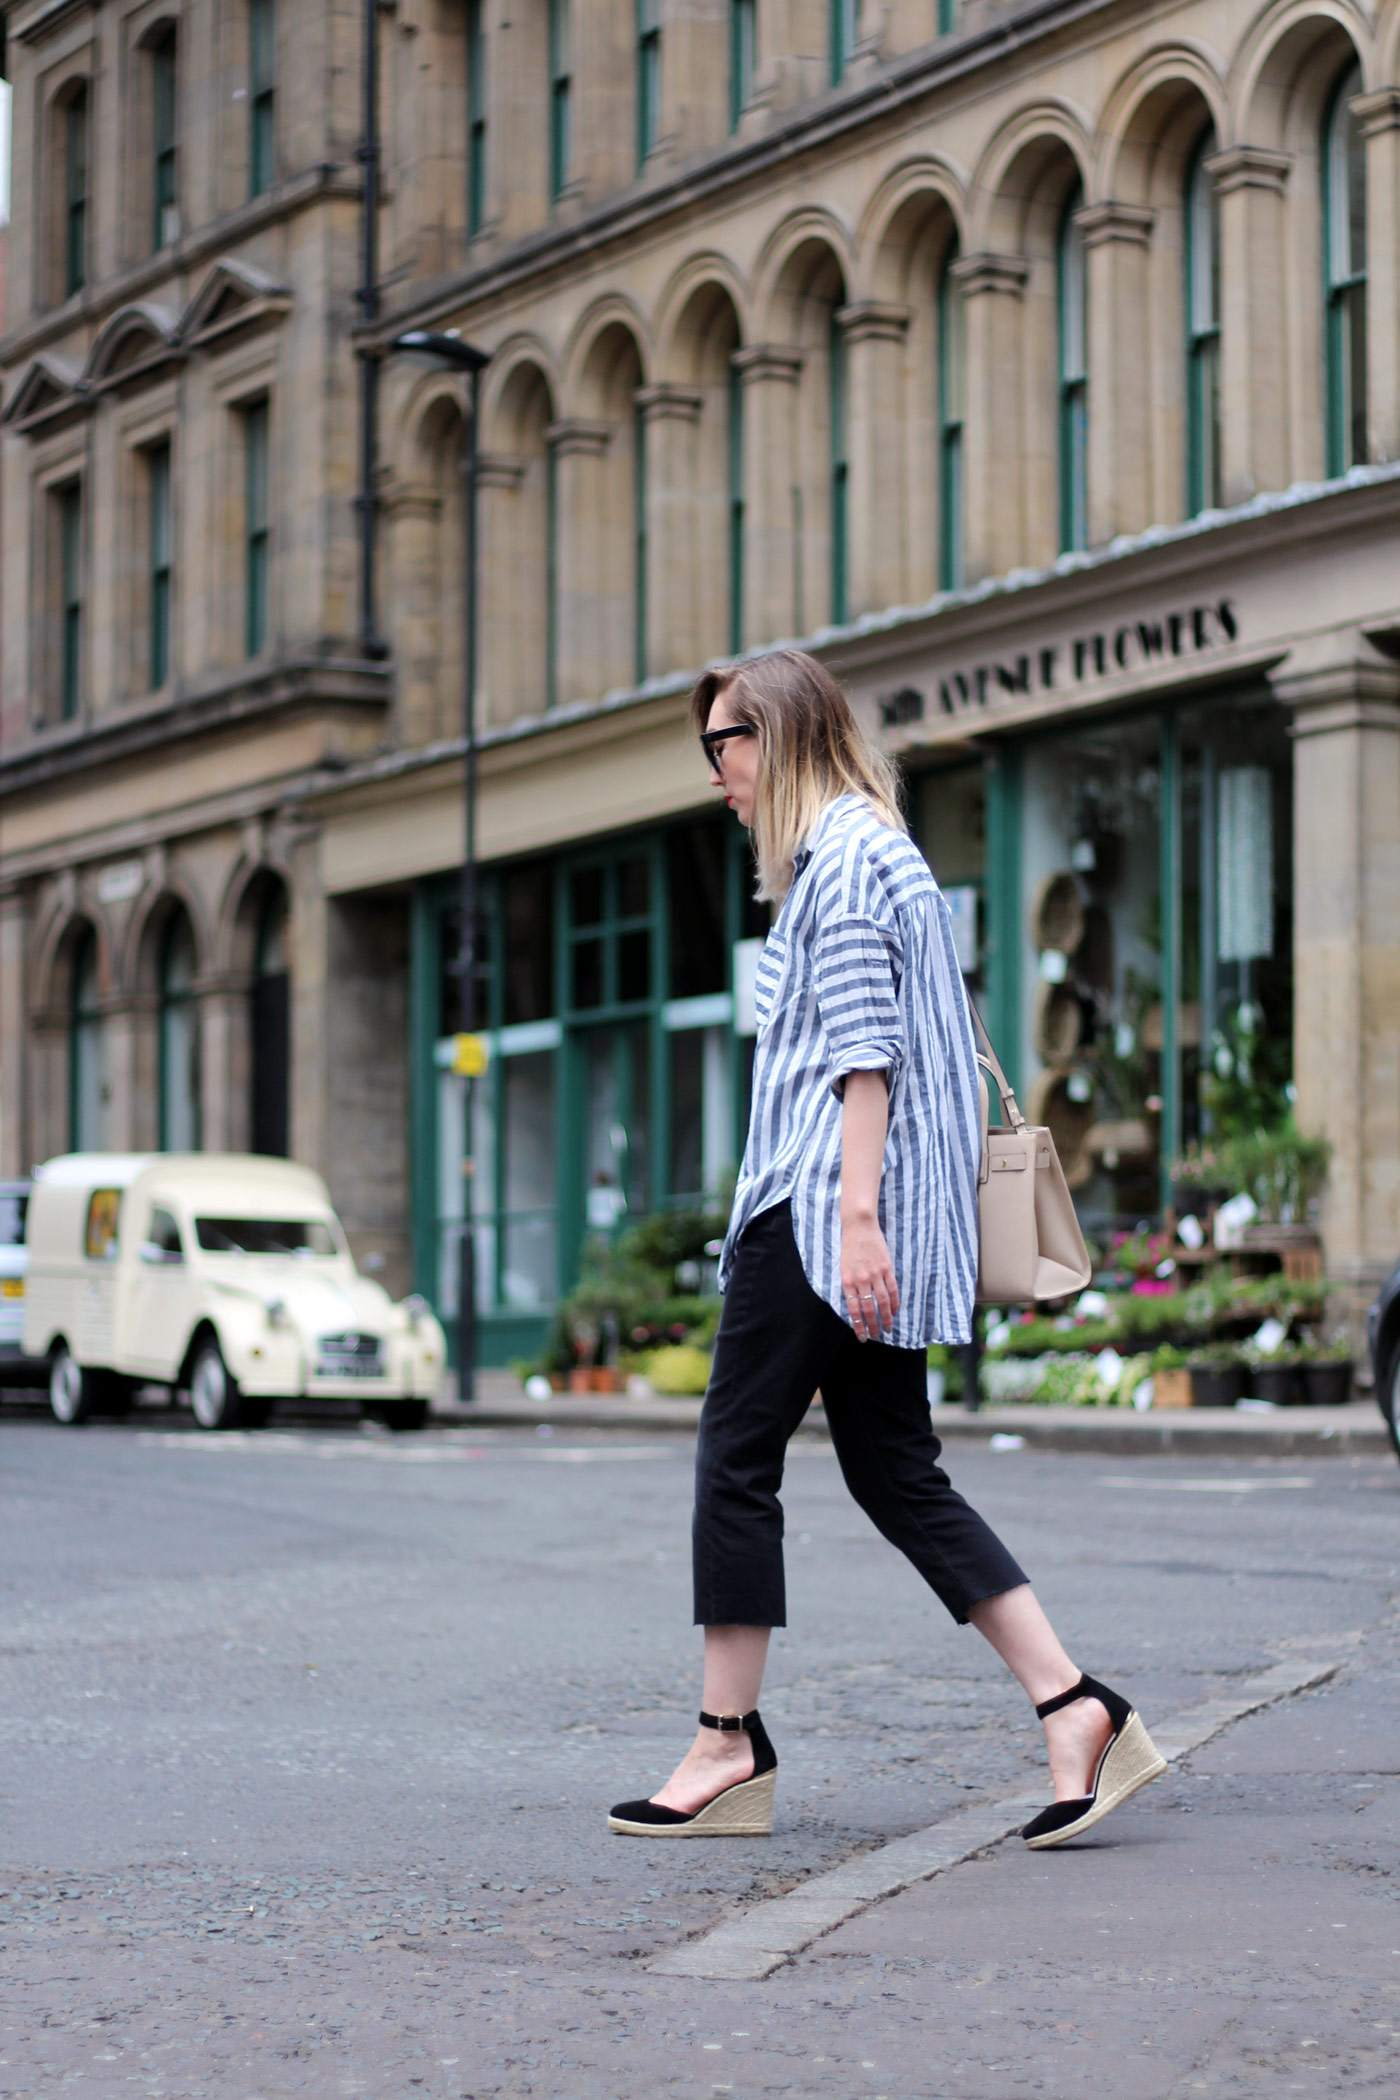 kurt-geiger-espadrille-wedge-heel-black-beige-bag-asos-stripe-shirt-celine-audrey-sunglasses-2